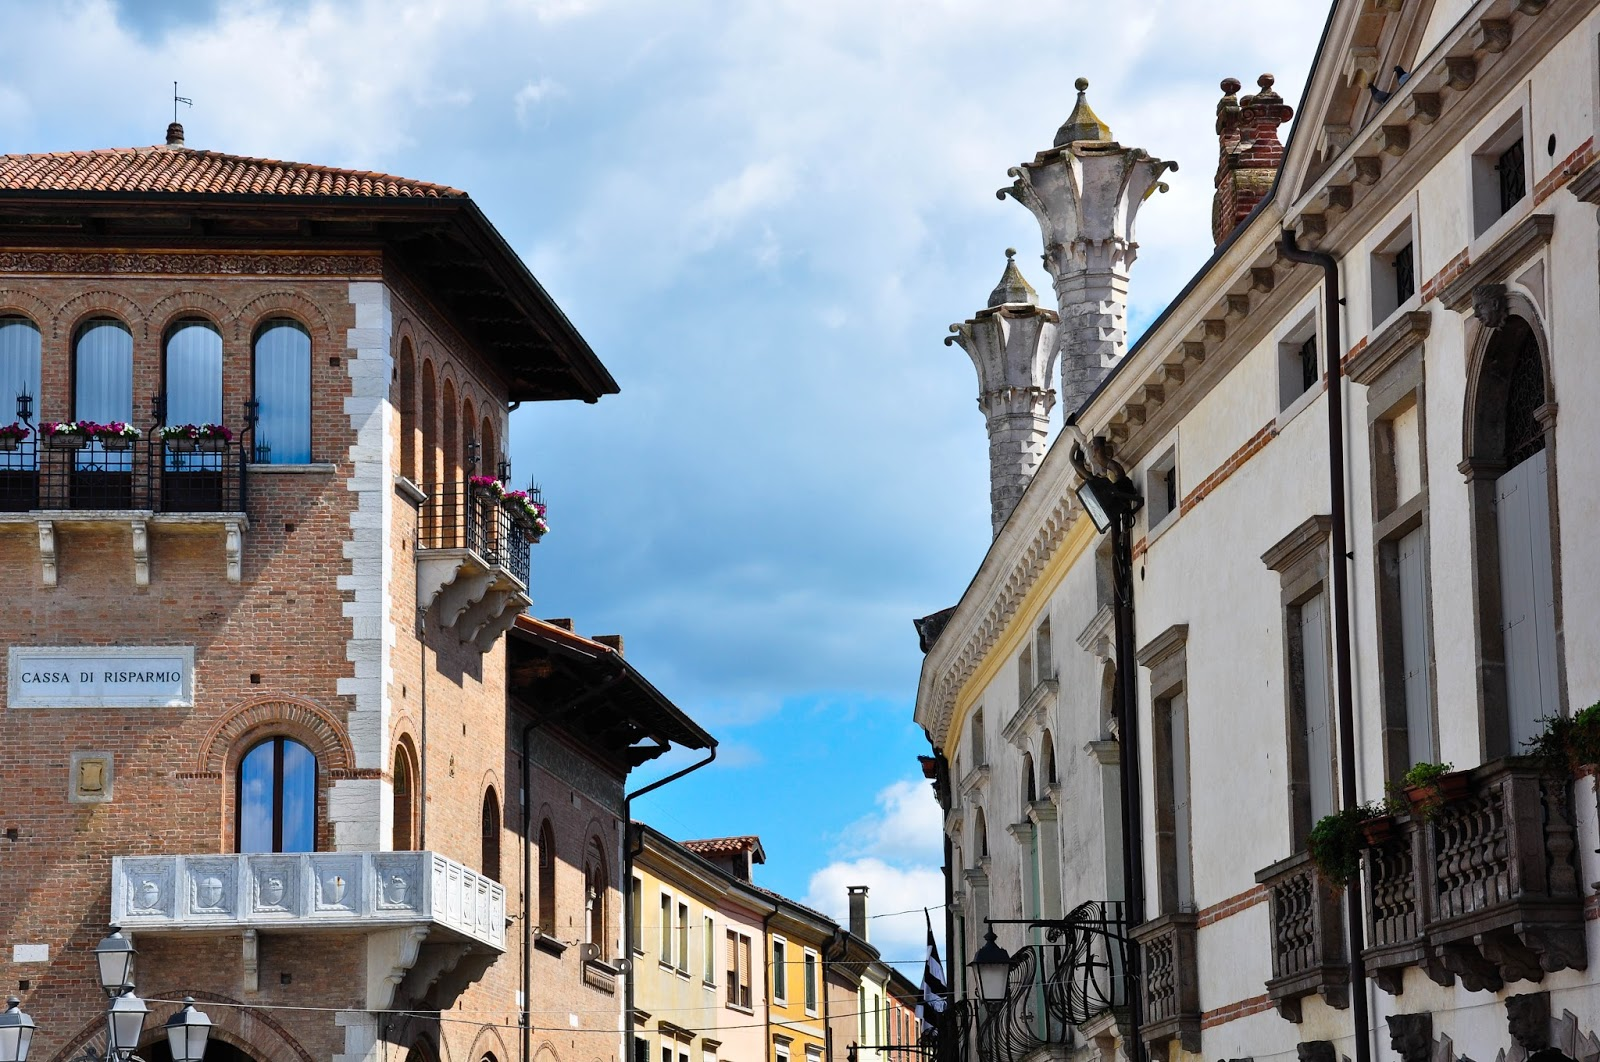 Houses in Montagnana, Veneto, Italy - www.rossiwrites.com